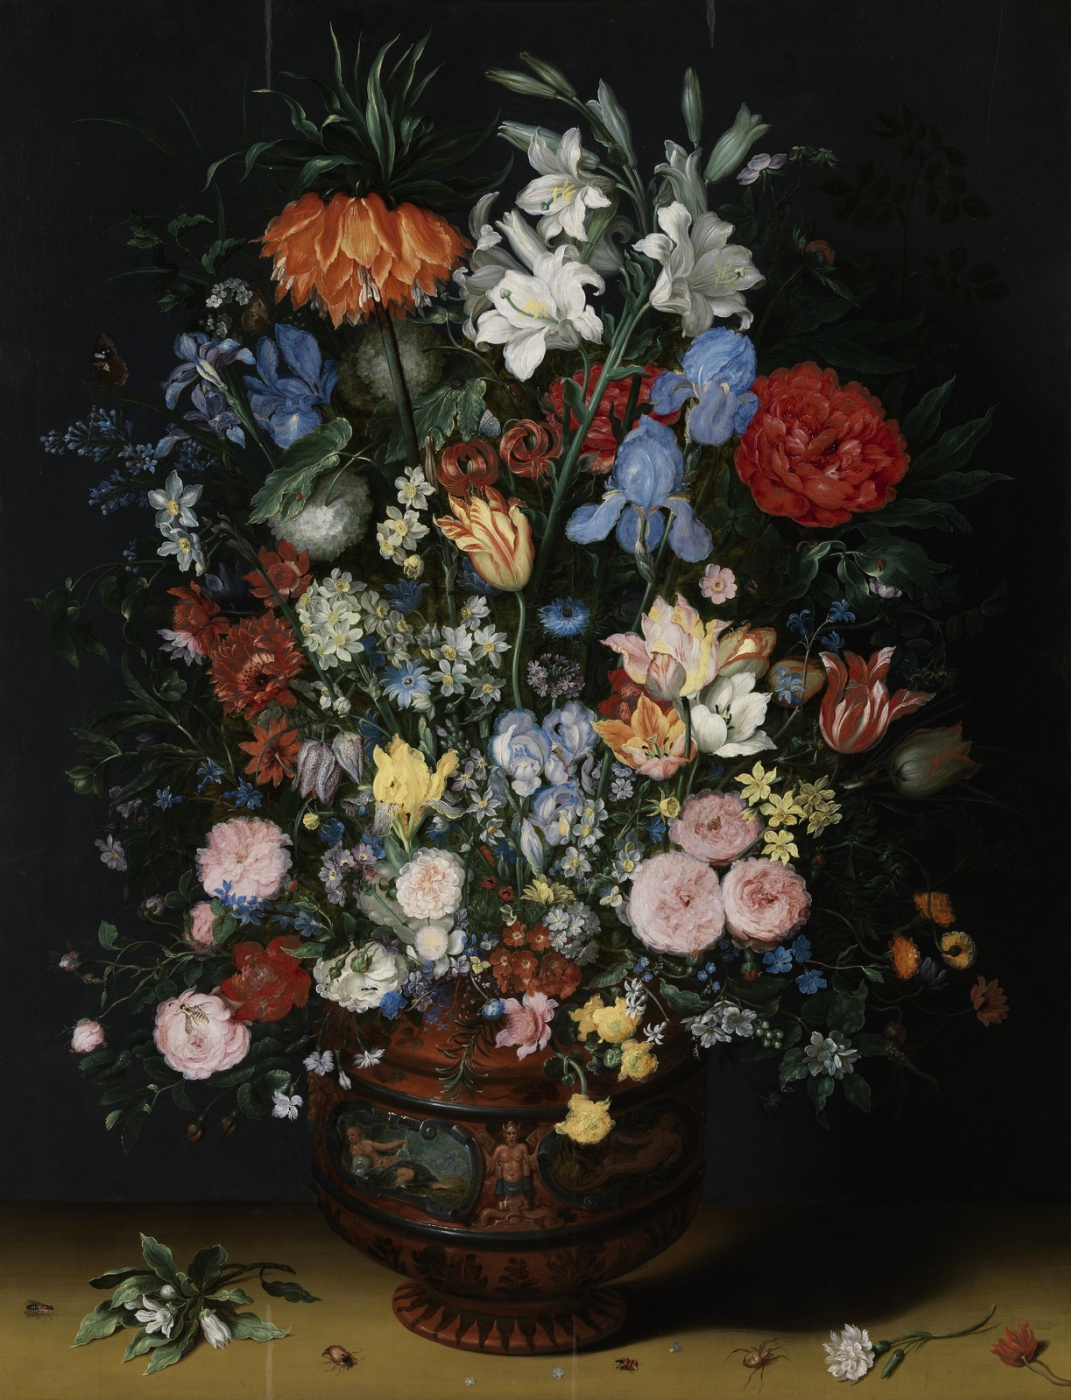 Jan Bruegel The Elder. Flowers in a terracotta vase